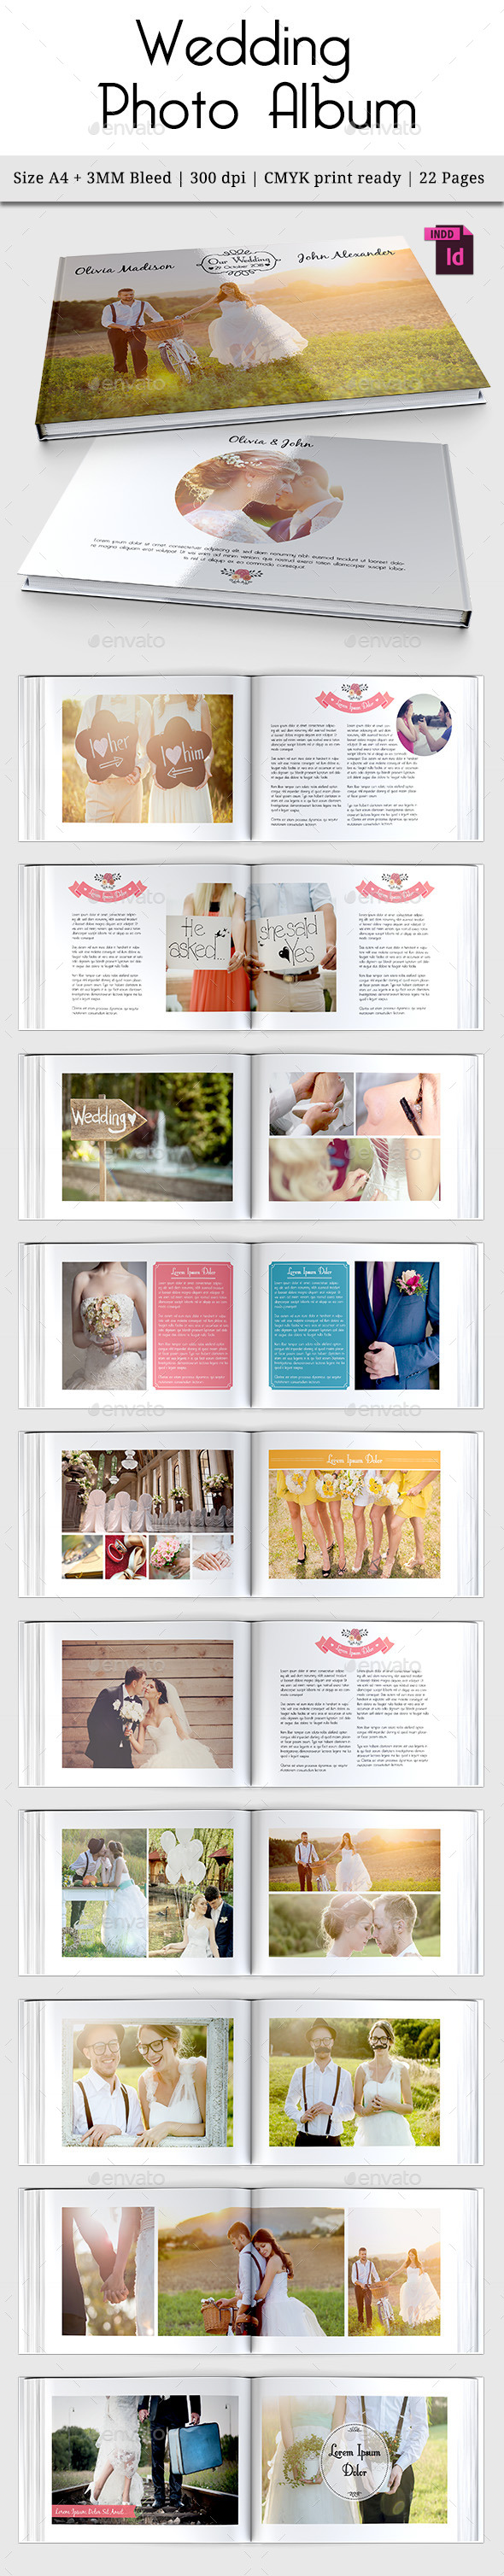 Wedding Photo Album Vol. 3 - Photo Albums Print Templates